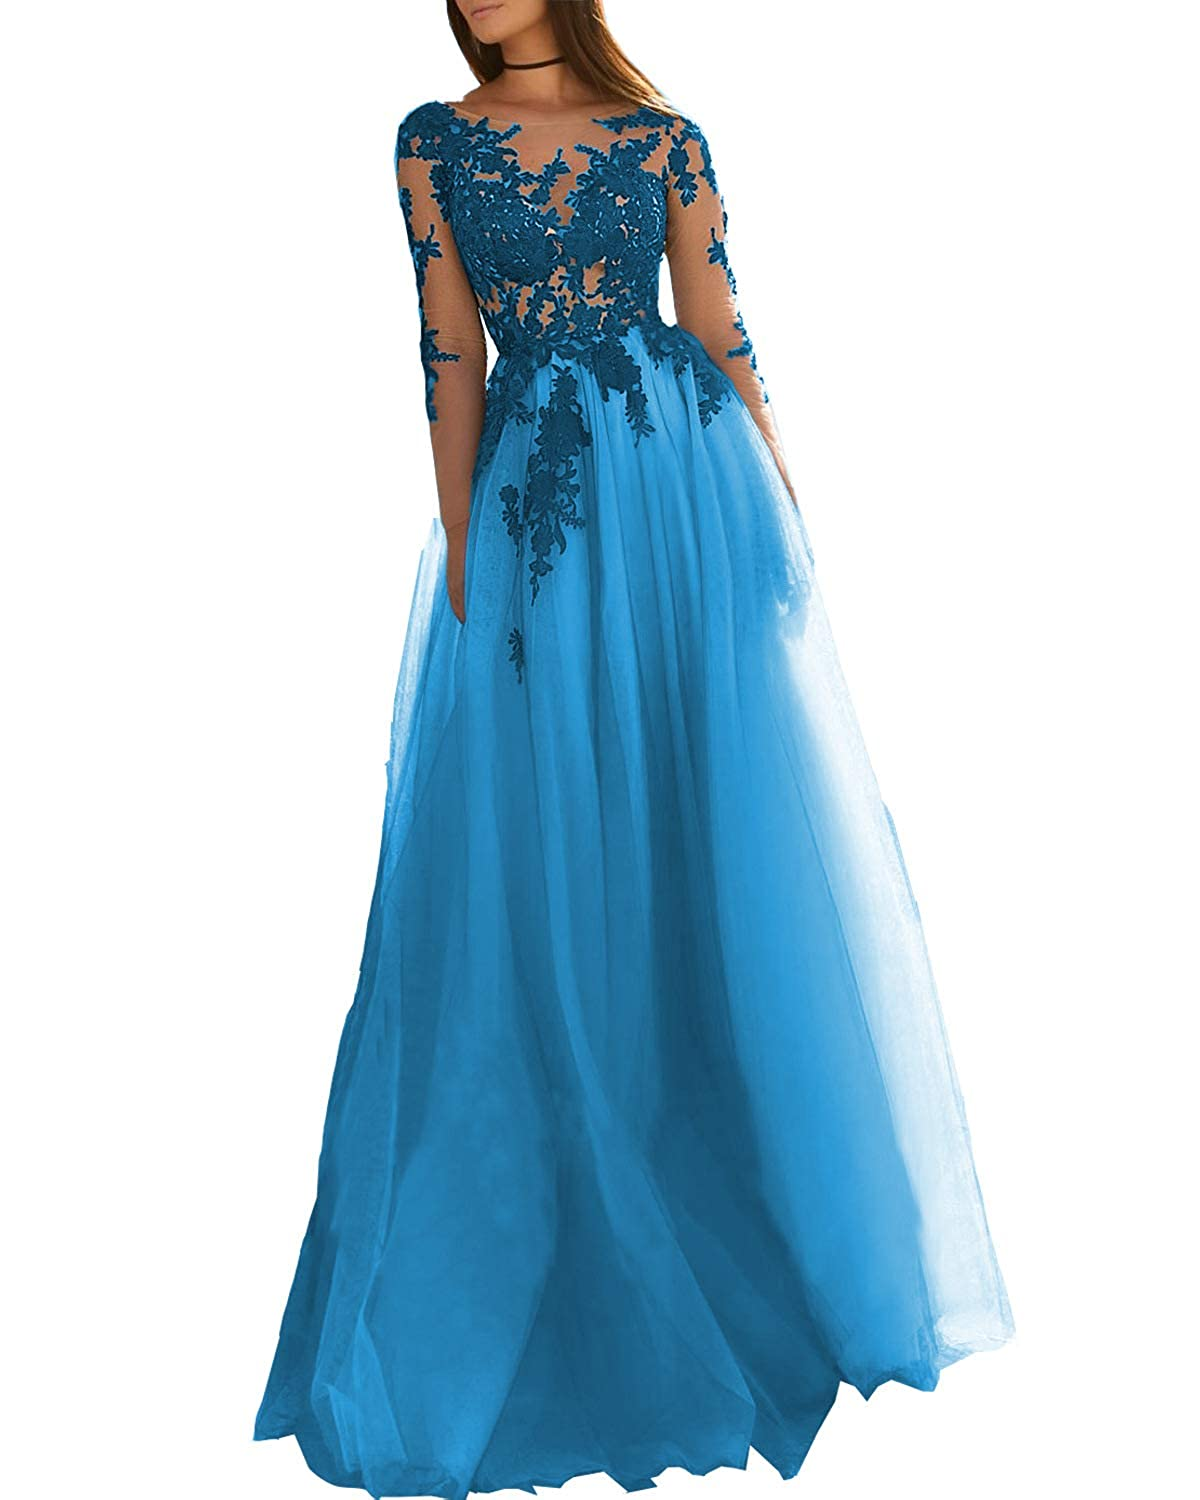 bluee EverBeauty Womens Long Lace Applique Tulle Prom Dress Aline Open Back Evening Ball Gown